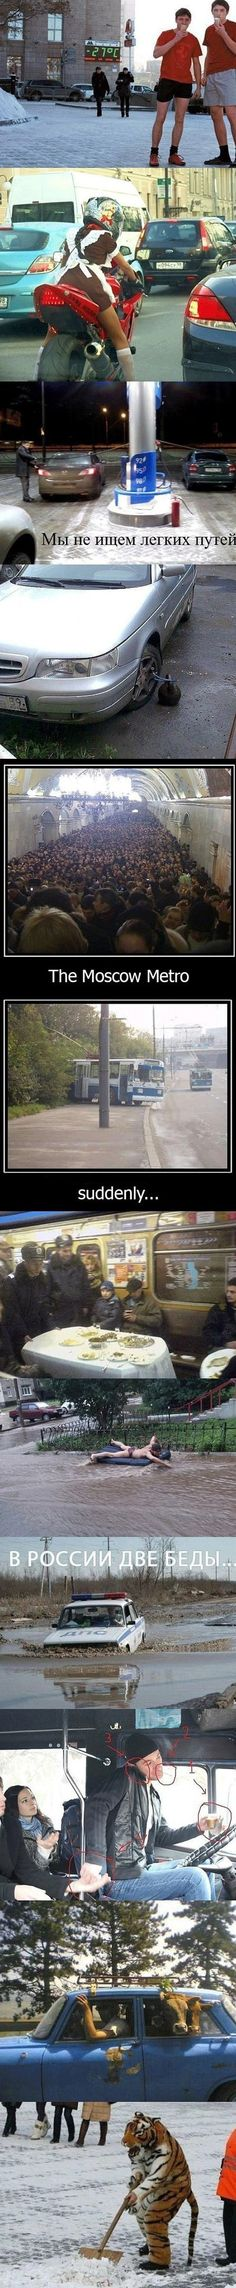 Funny Pictures - Only in Russia - www.funny-pictures-blog.com